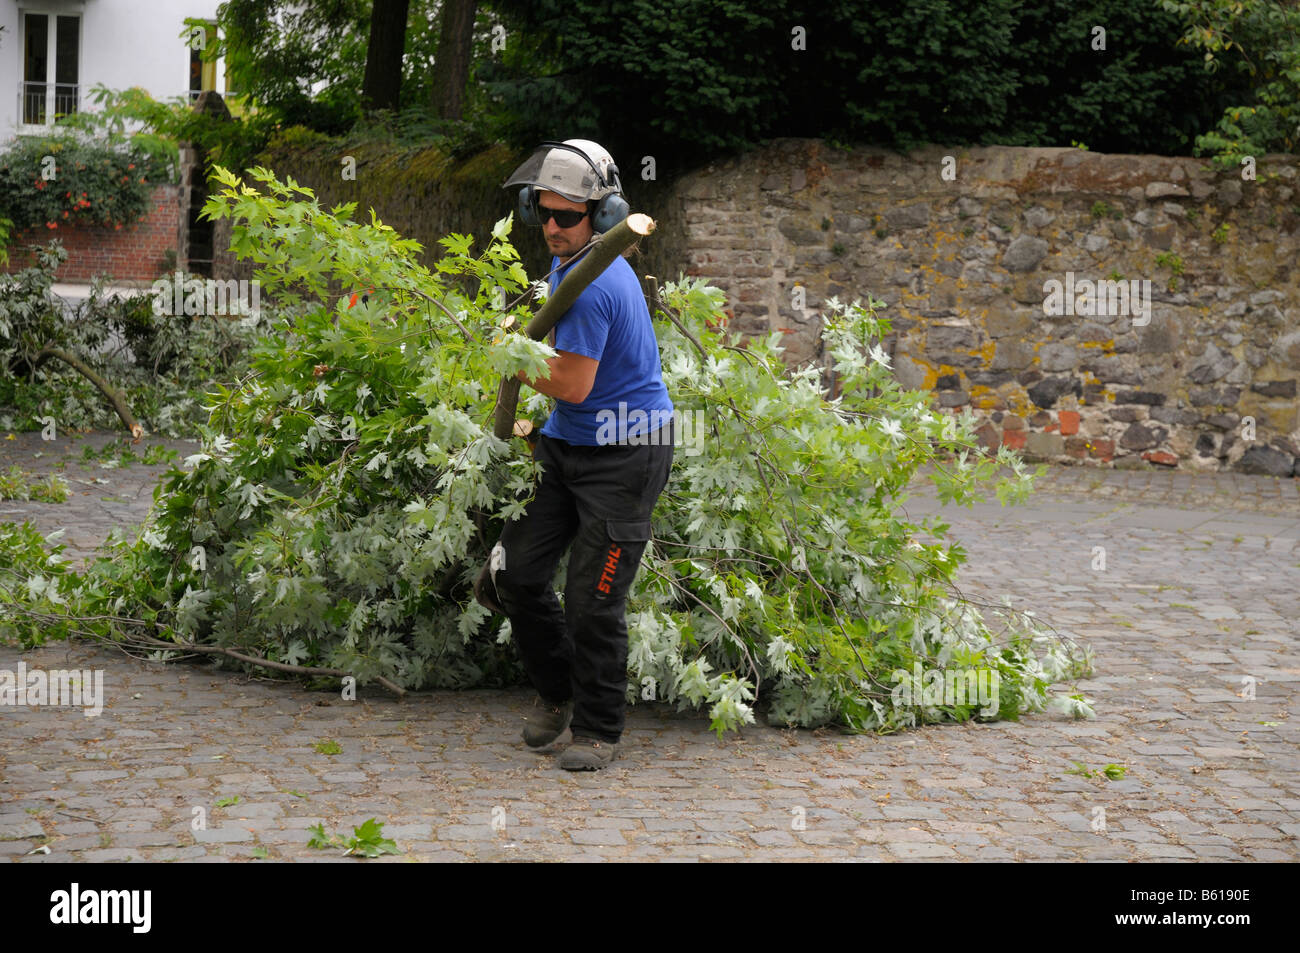 Man removing detached branches - Stock Image